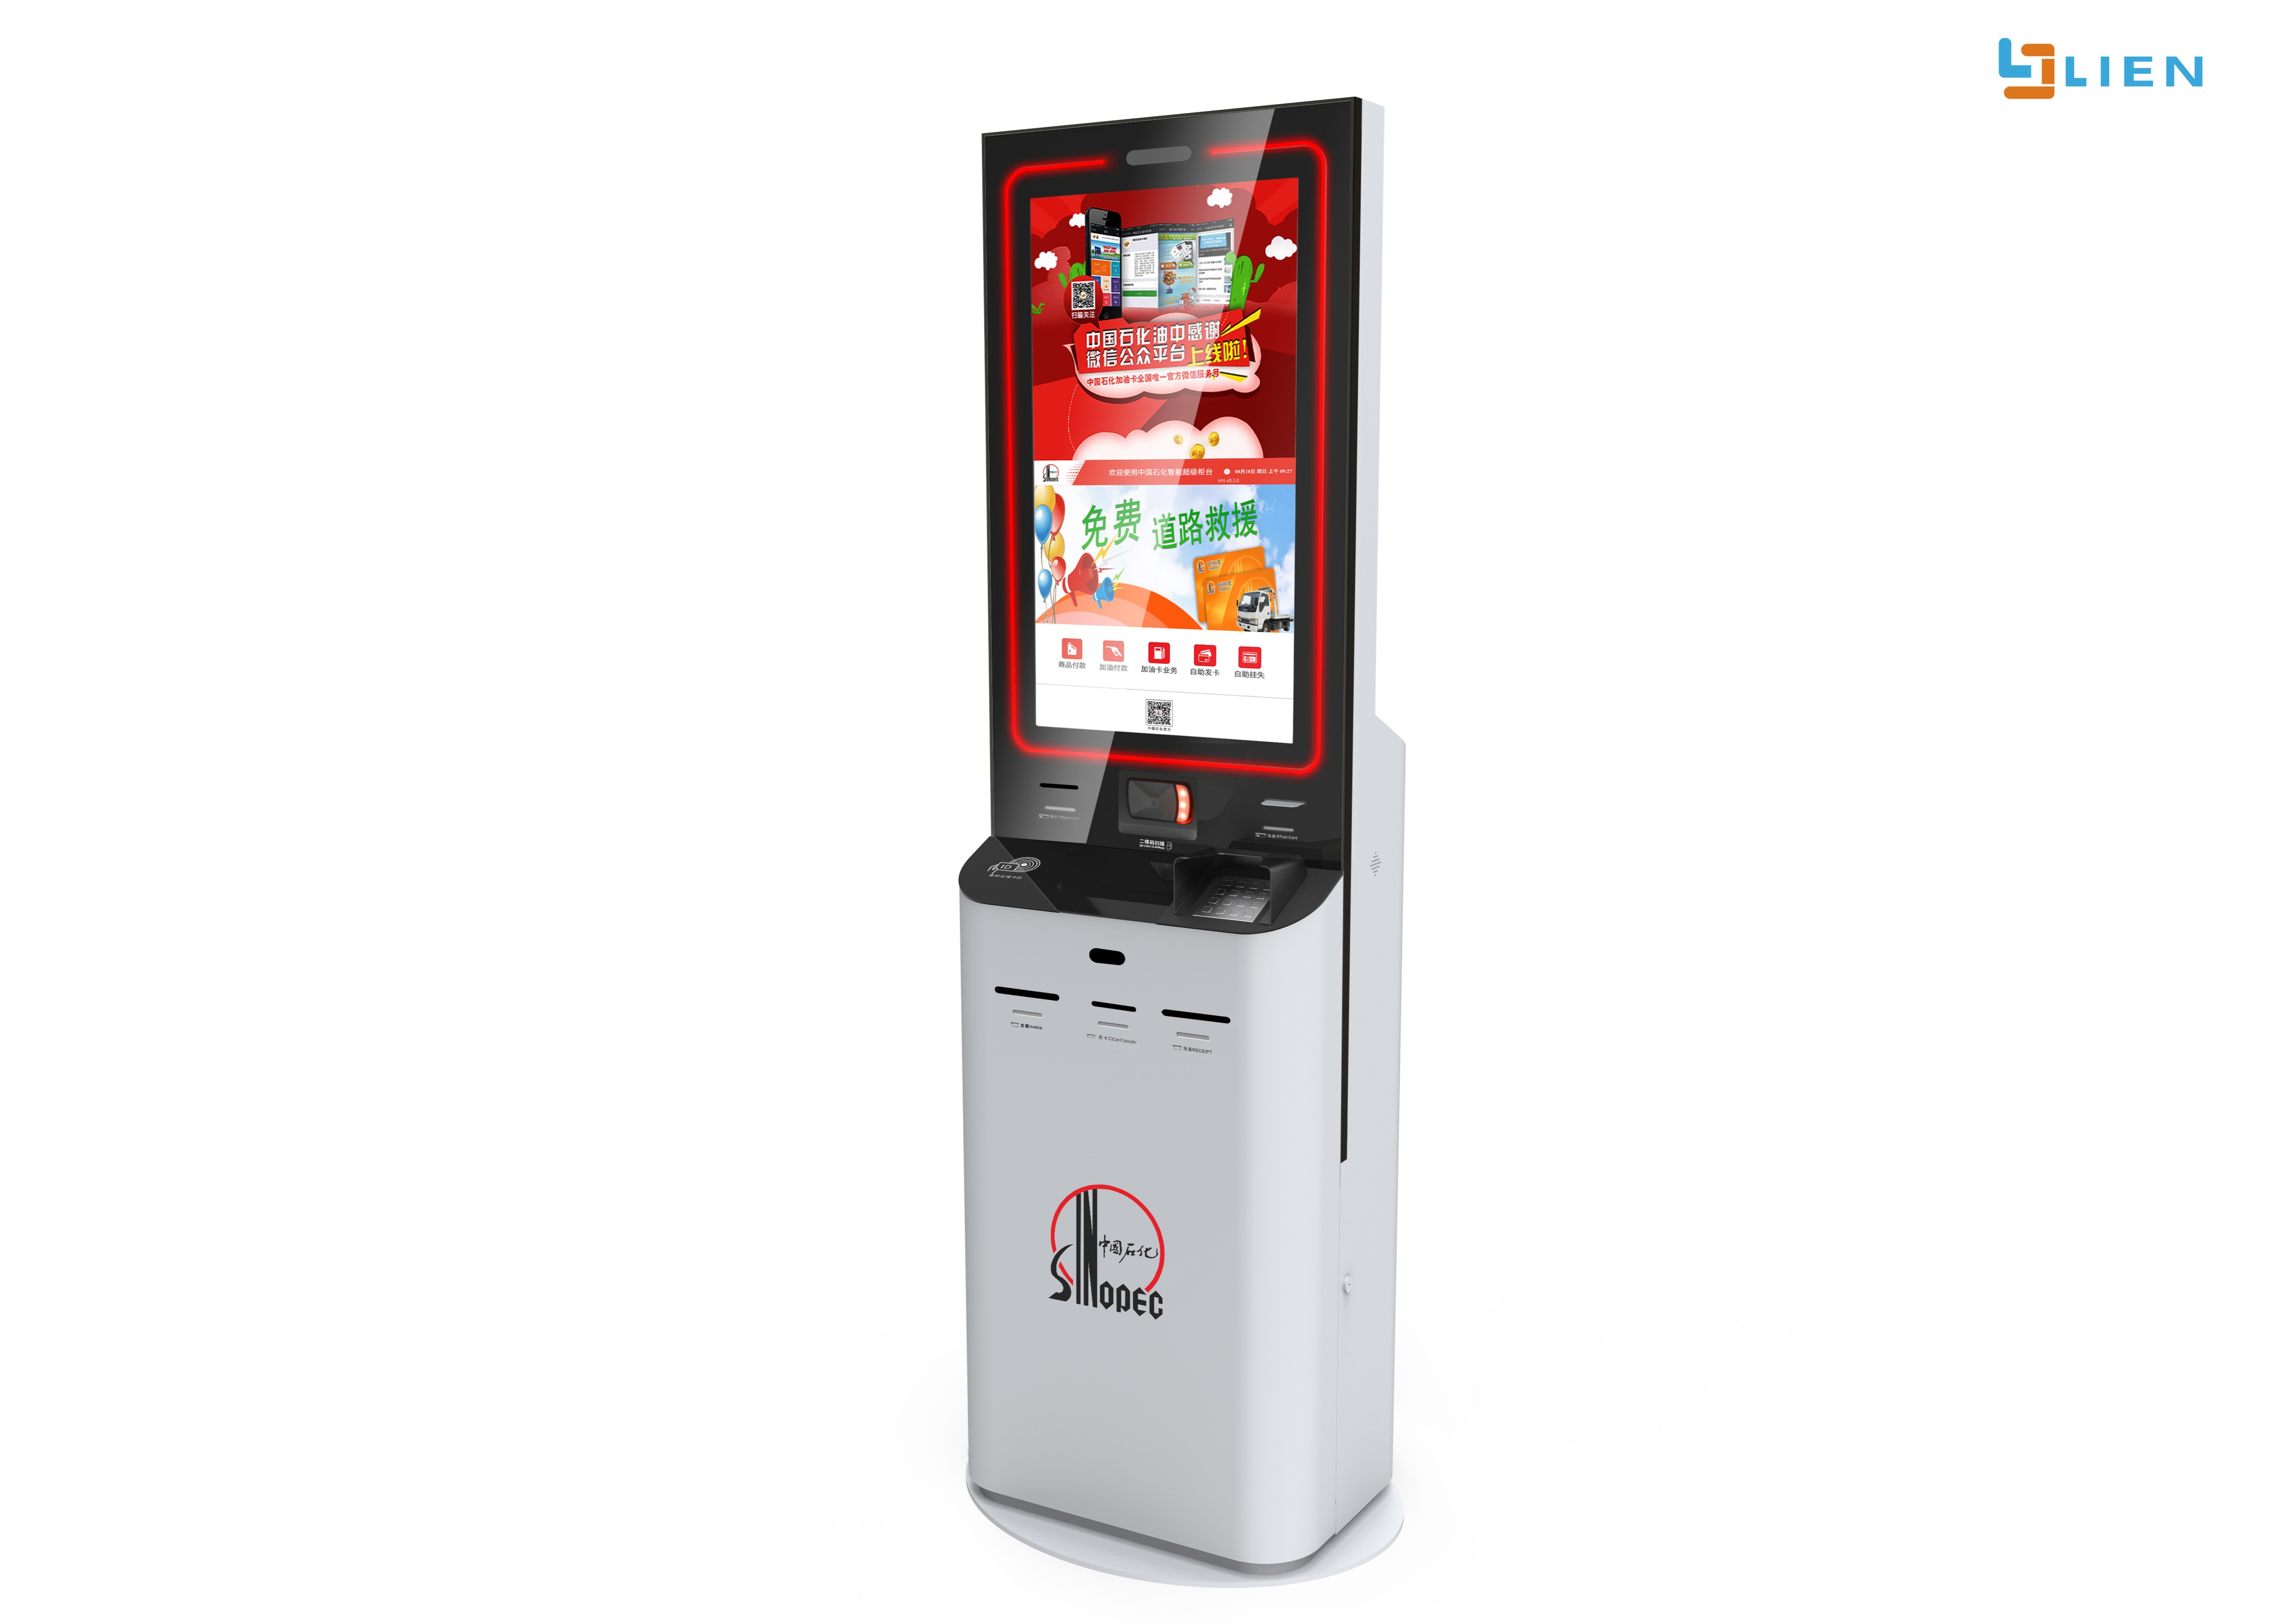 Govemment / Industry Stand Alone Bill Payment Ticketing Kiosk IR / SAW / Capacitive